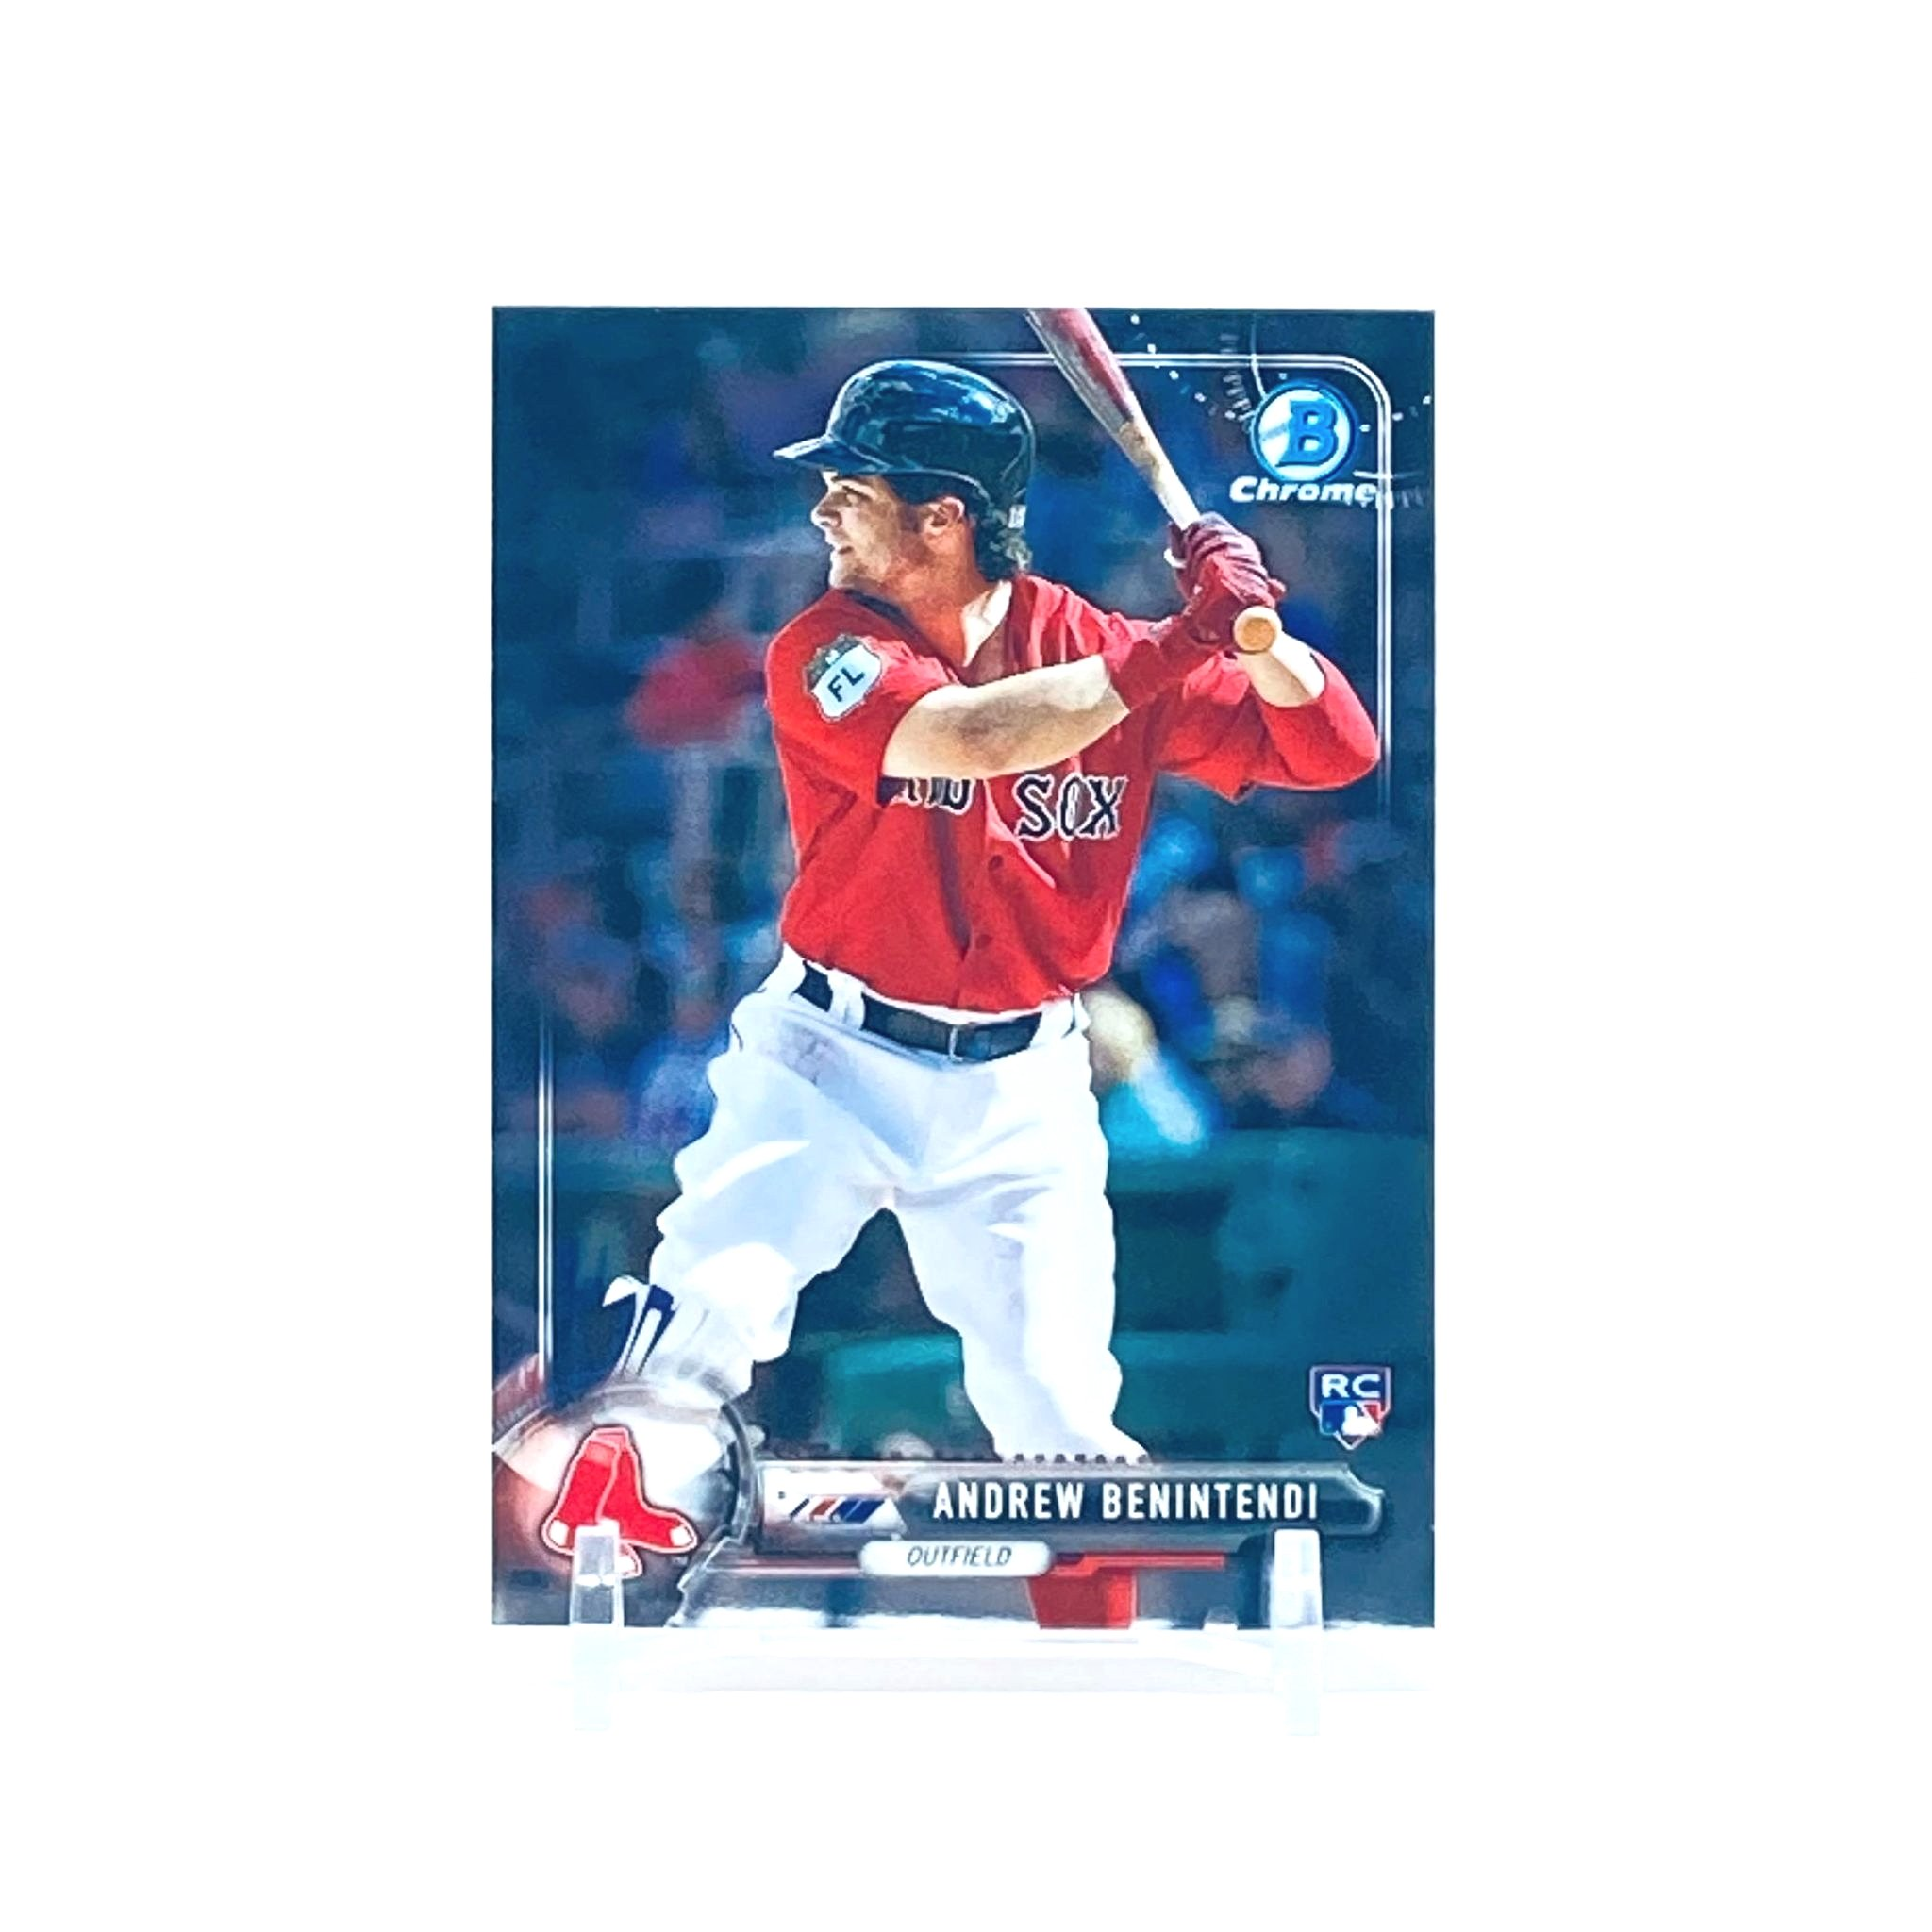 2017 Bowman Chrome Andrew Benintendi Rookie Card Boston Red Sox